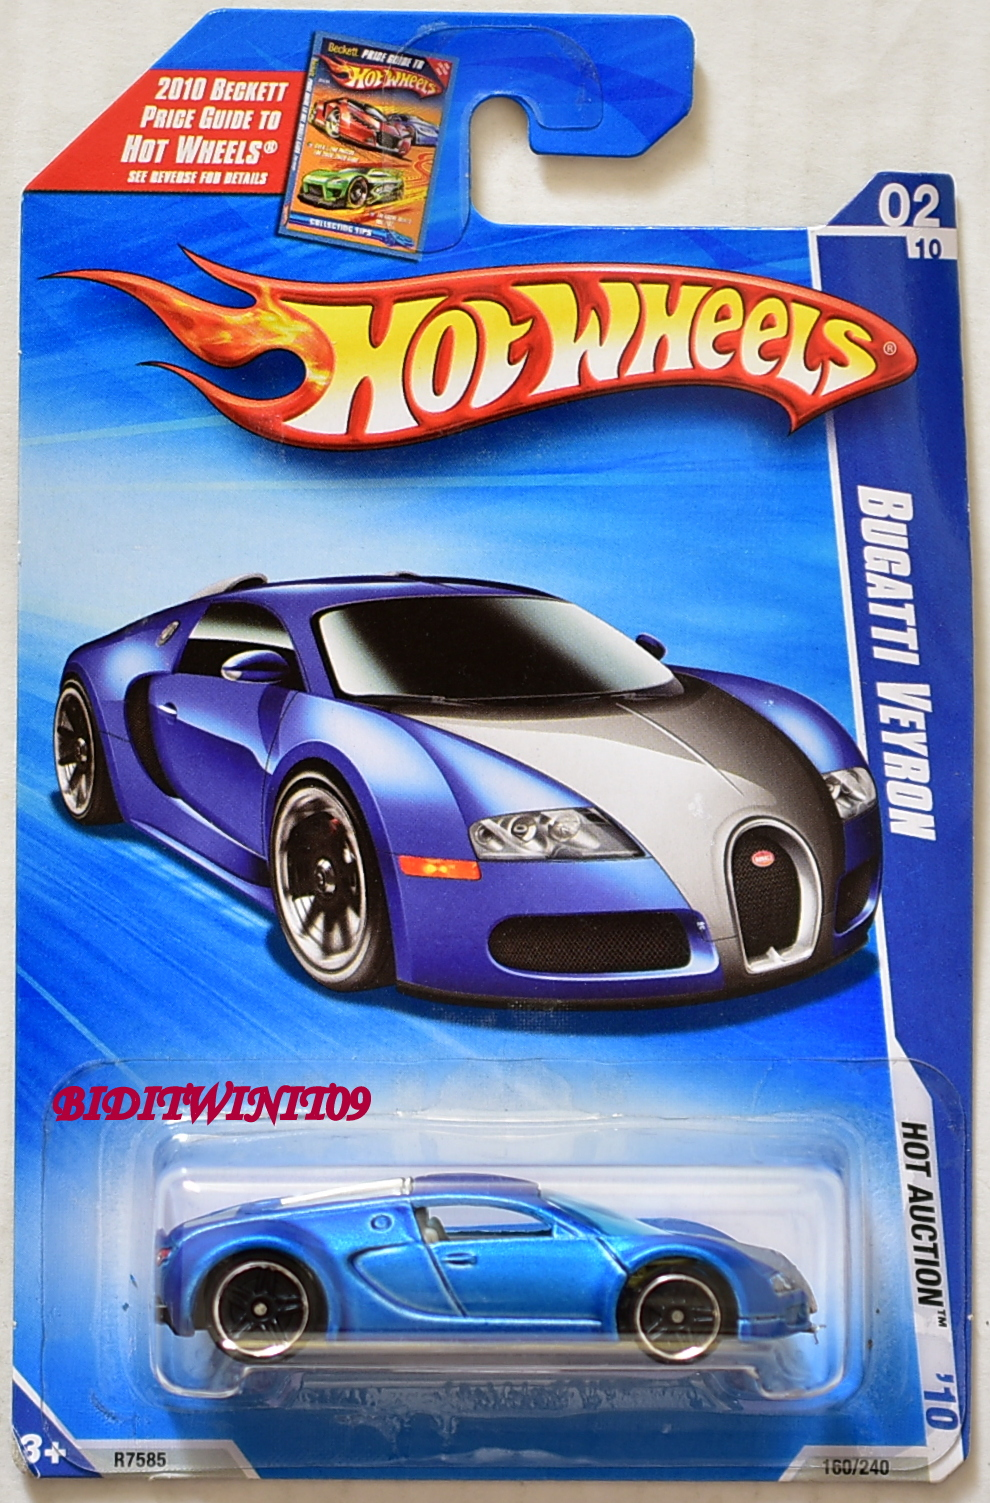 HOT WHEELS 2010 HOT AUCTION BUGATTI VEYRON #02/10 BAD CARD E+